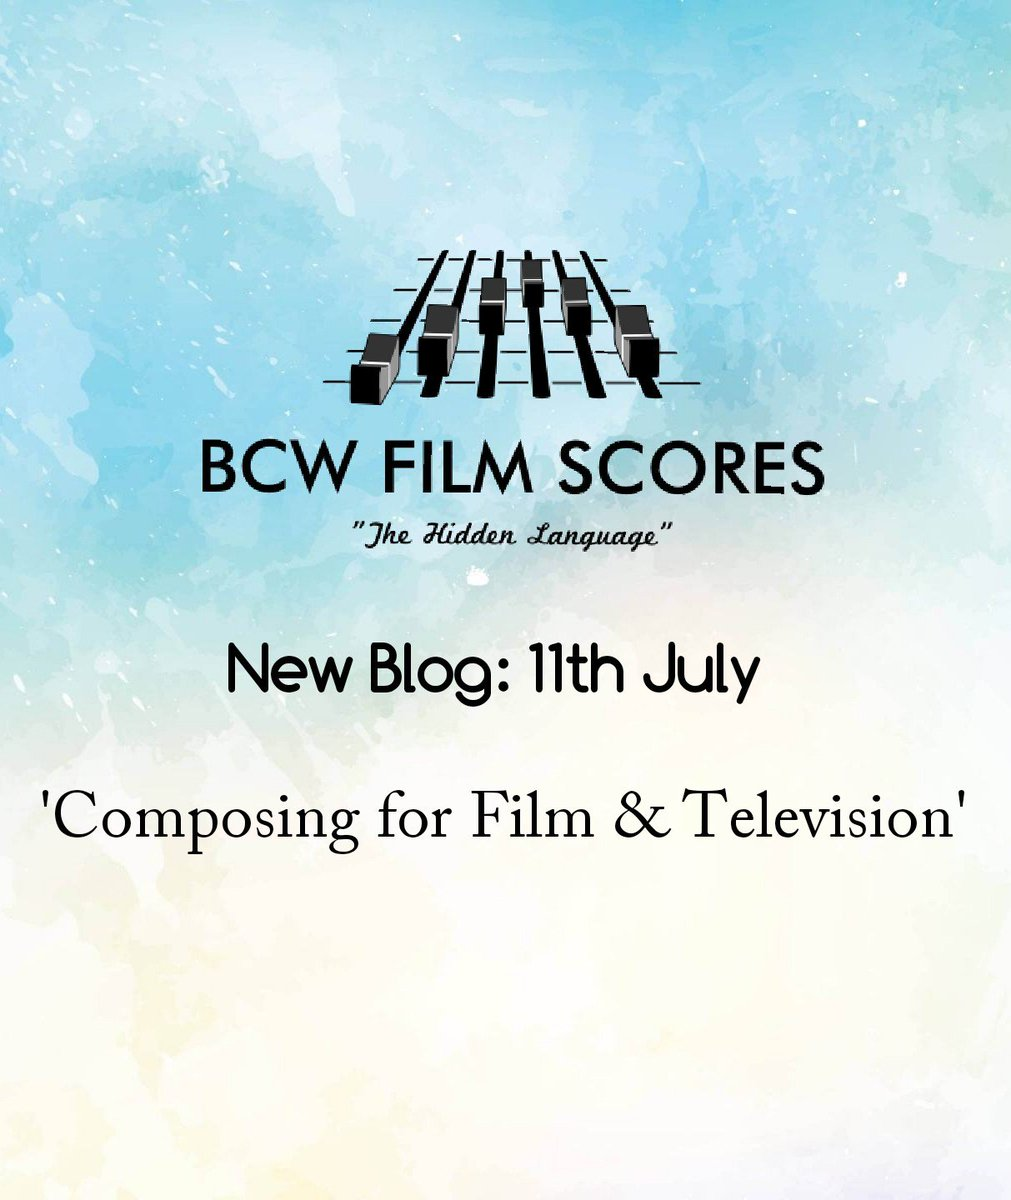 Excited to release our second blog on 11th July. We&#39;ll be talking about getting started as a Film Composer. Follow for updates! #bcw #blog <br>http://pic.twitter.com/lQFD8iH0cy